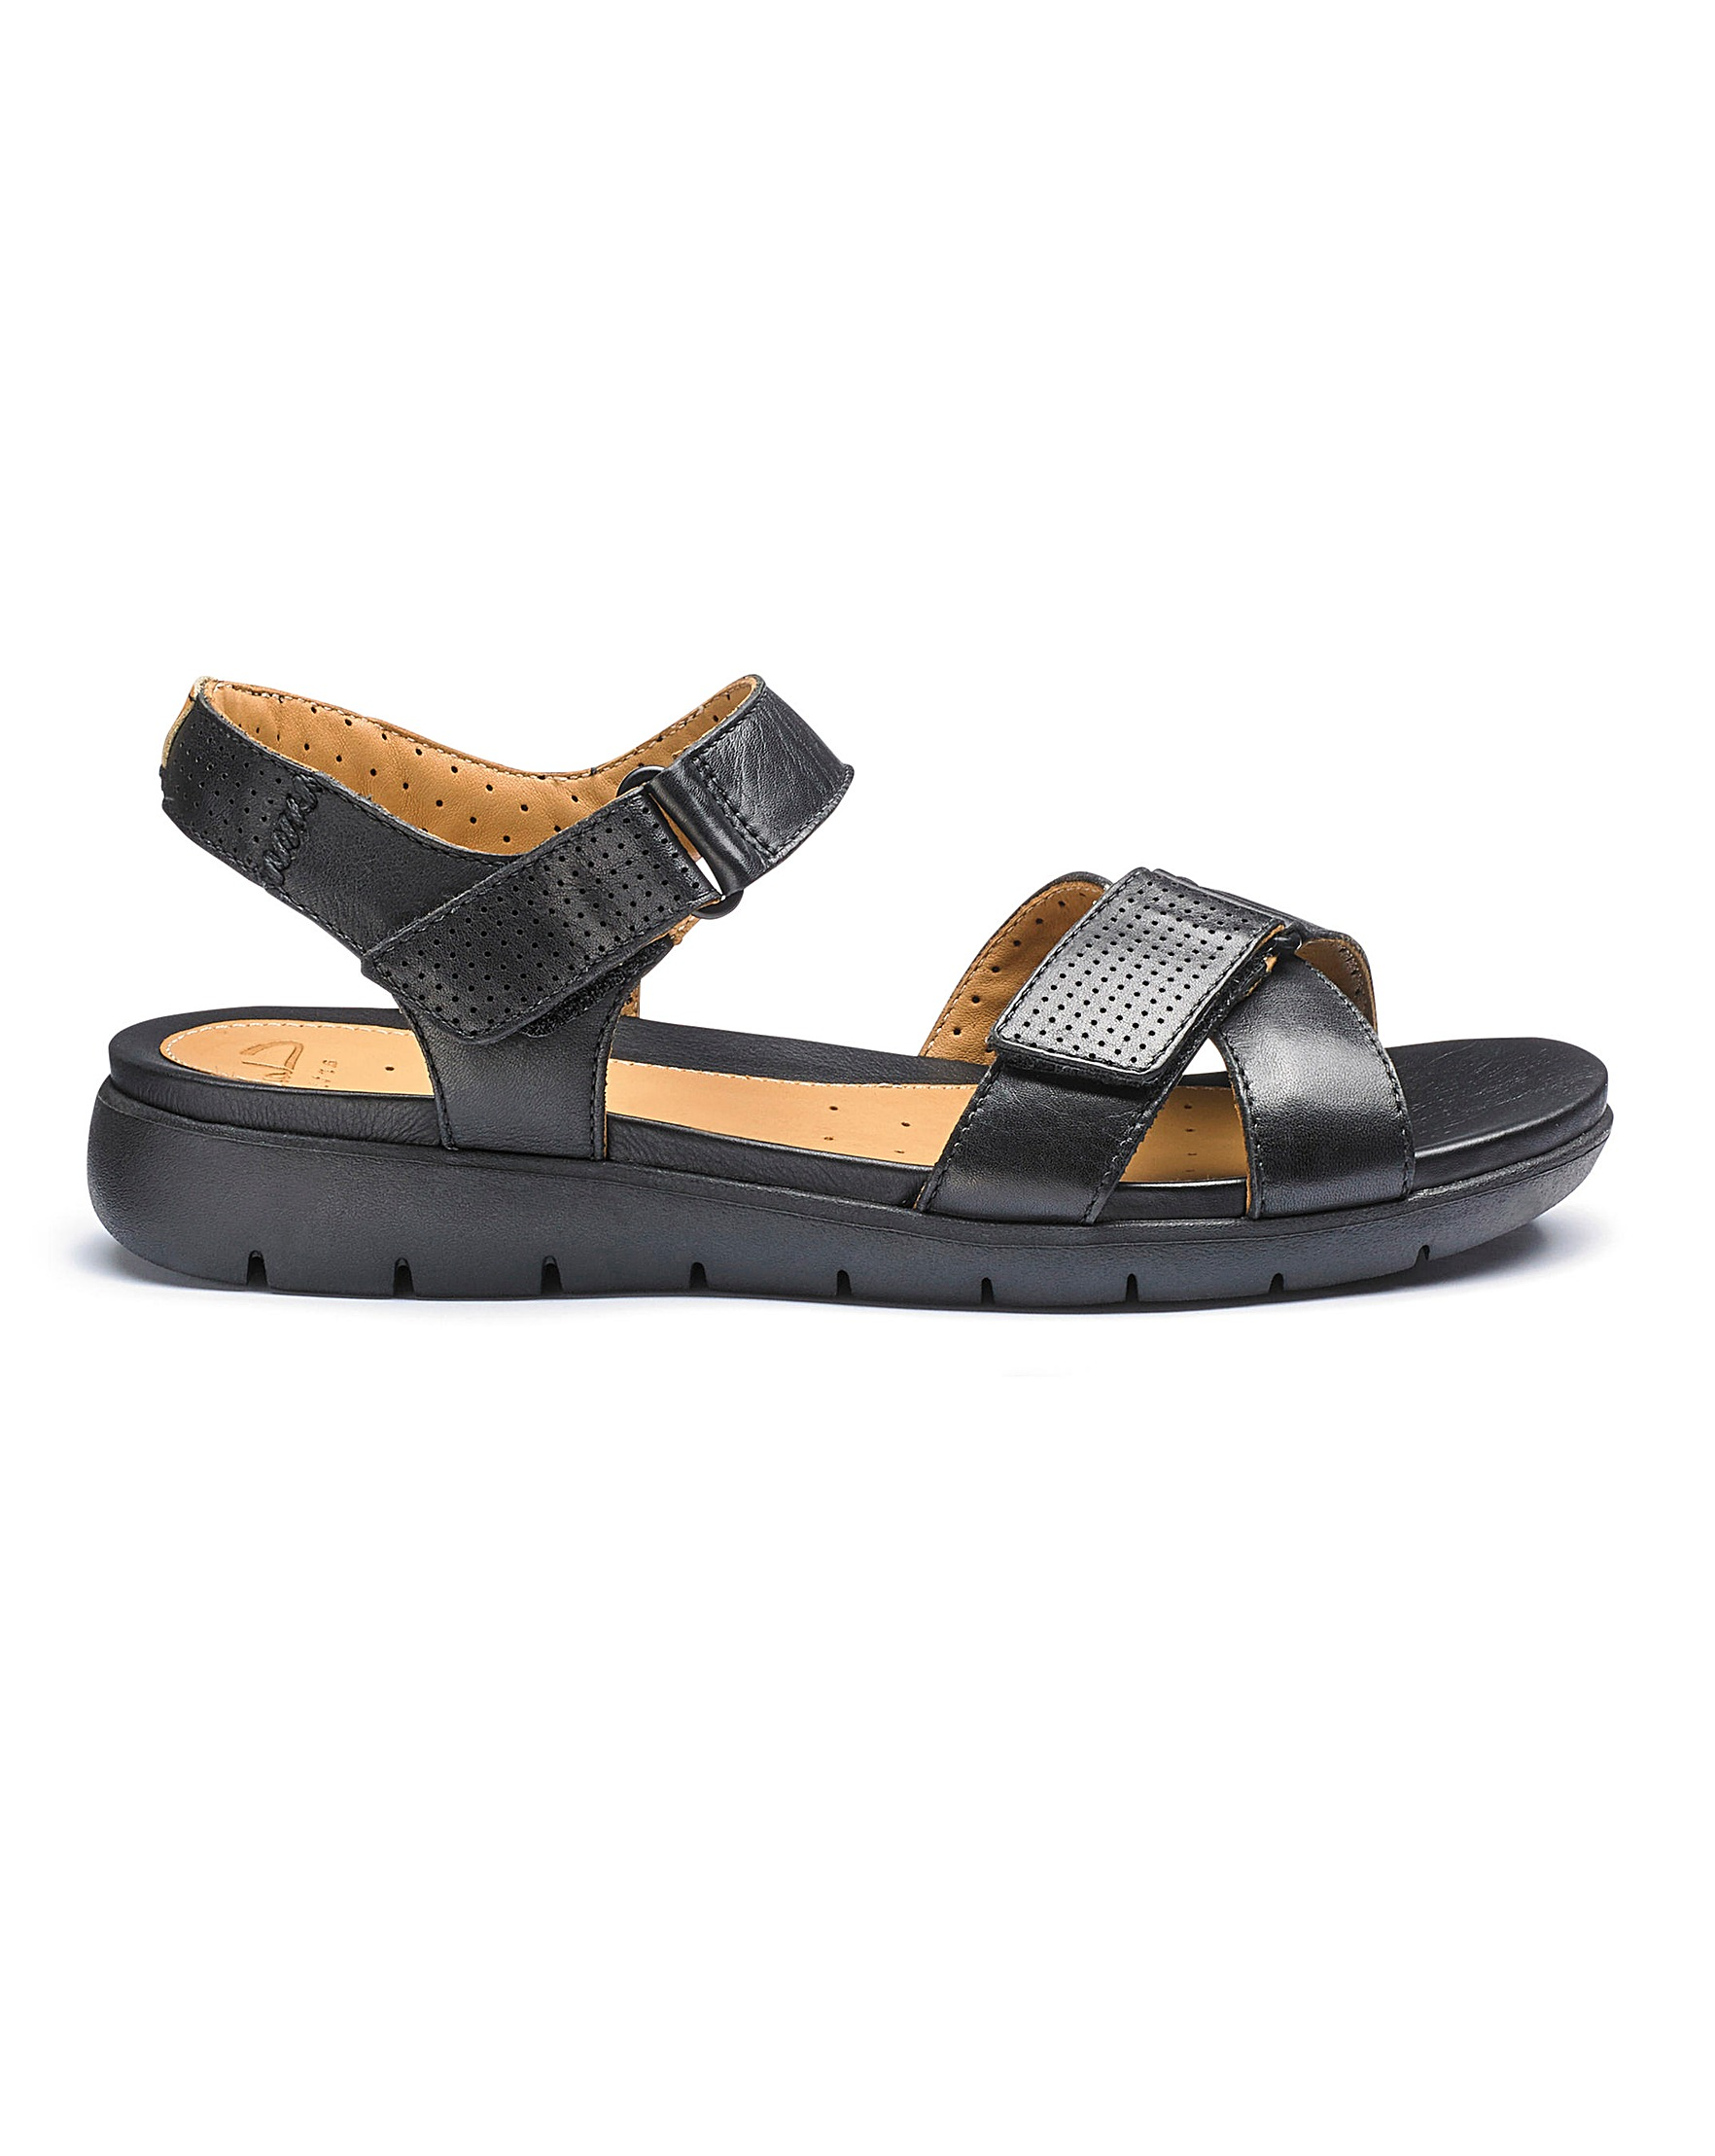 7f108153460 Clarks Un Saffron Sandals E Fit